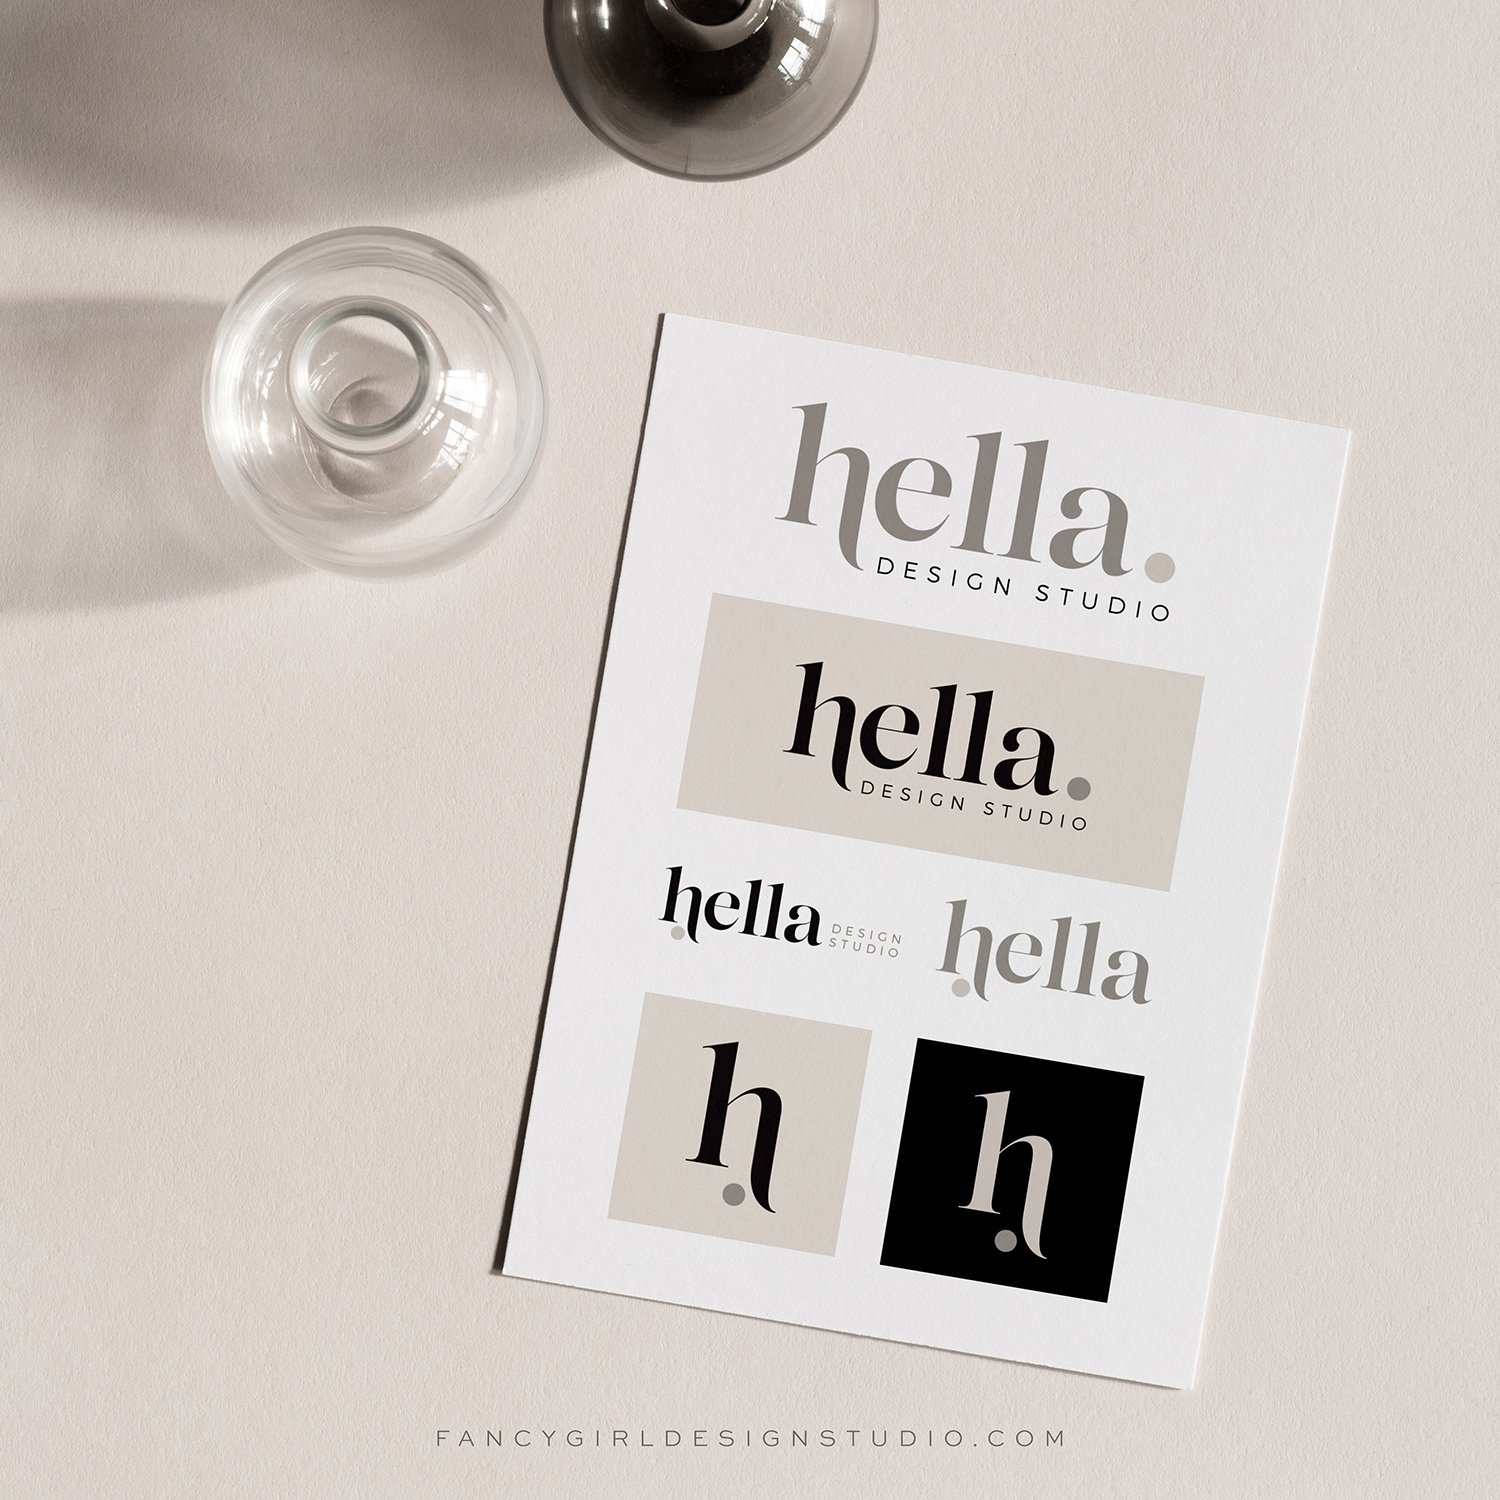 Logo design with variations for Hella Design Studio | polished, bold, and professional logo design for an interior design company